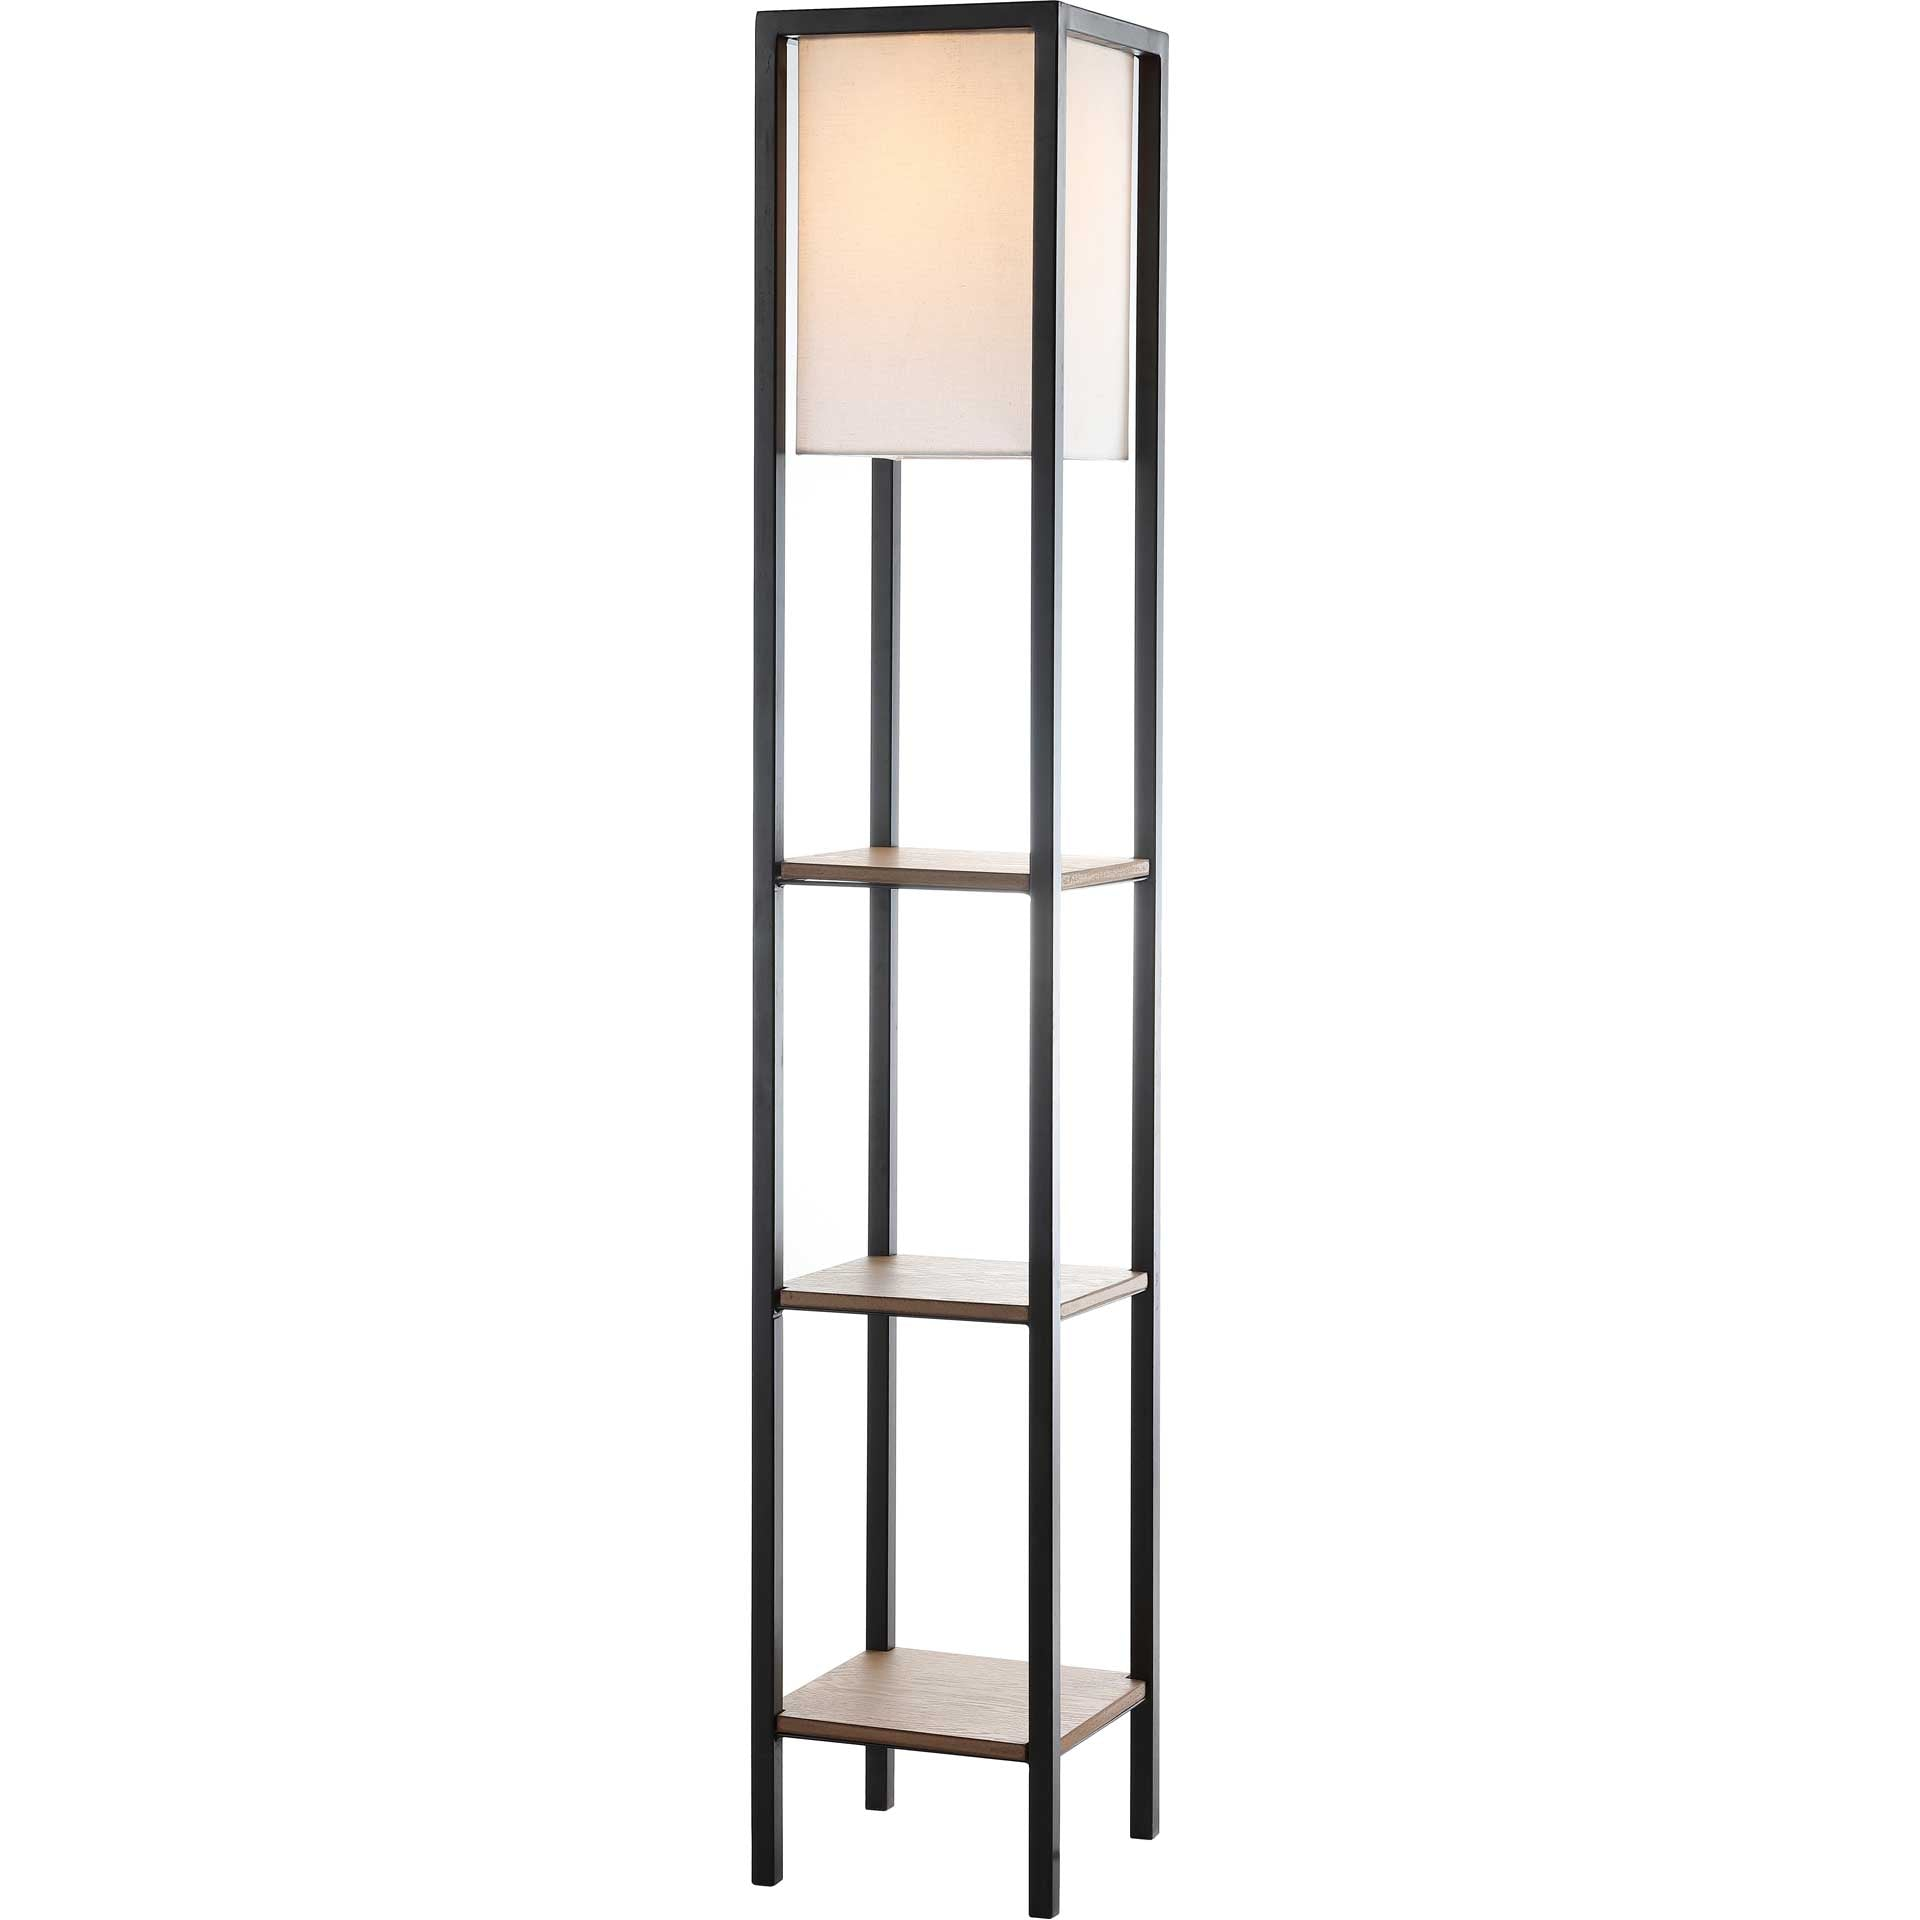 Riley Shelf Floor Lamp Light Brown/Black